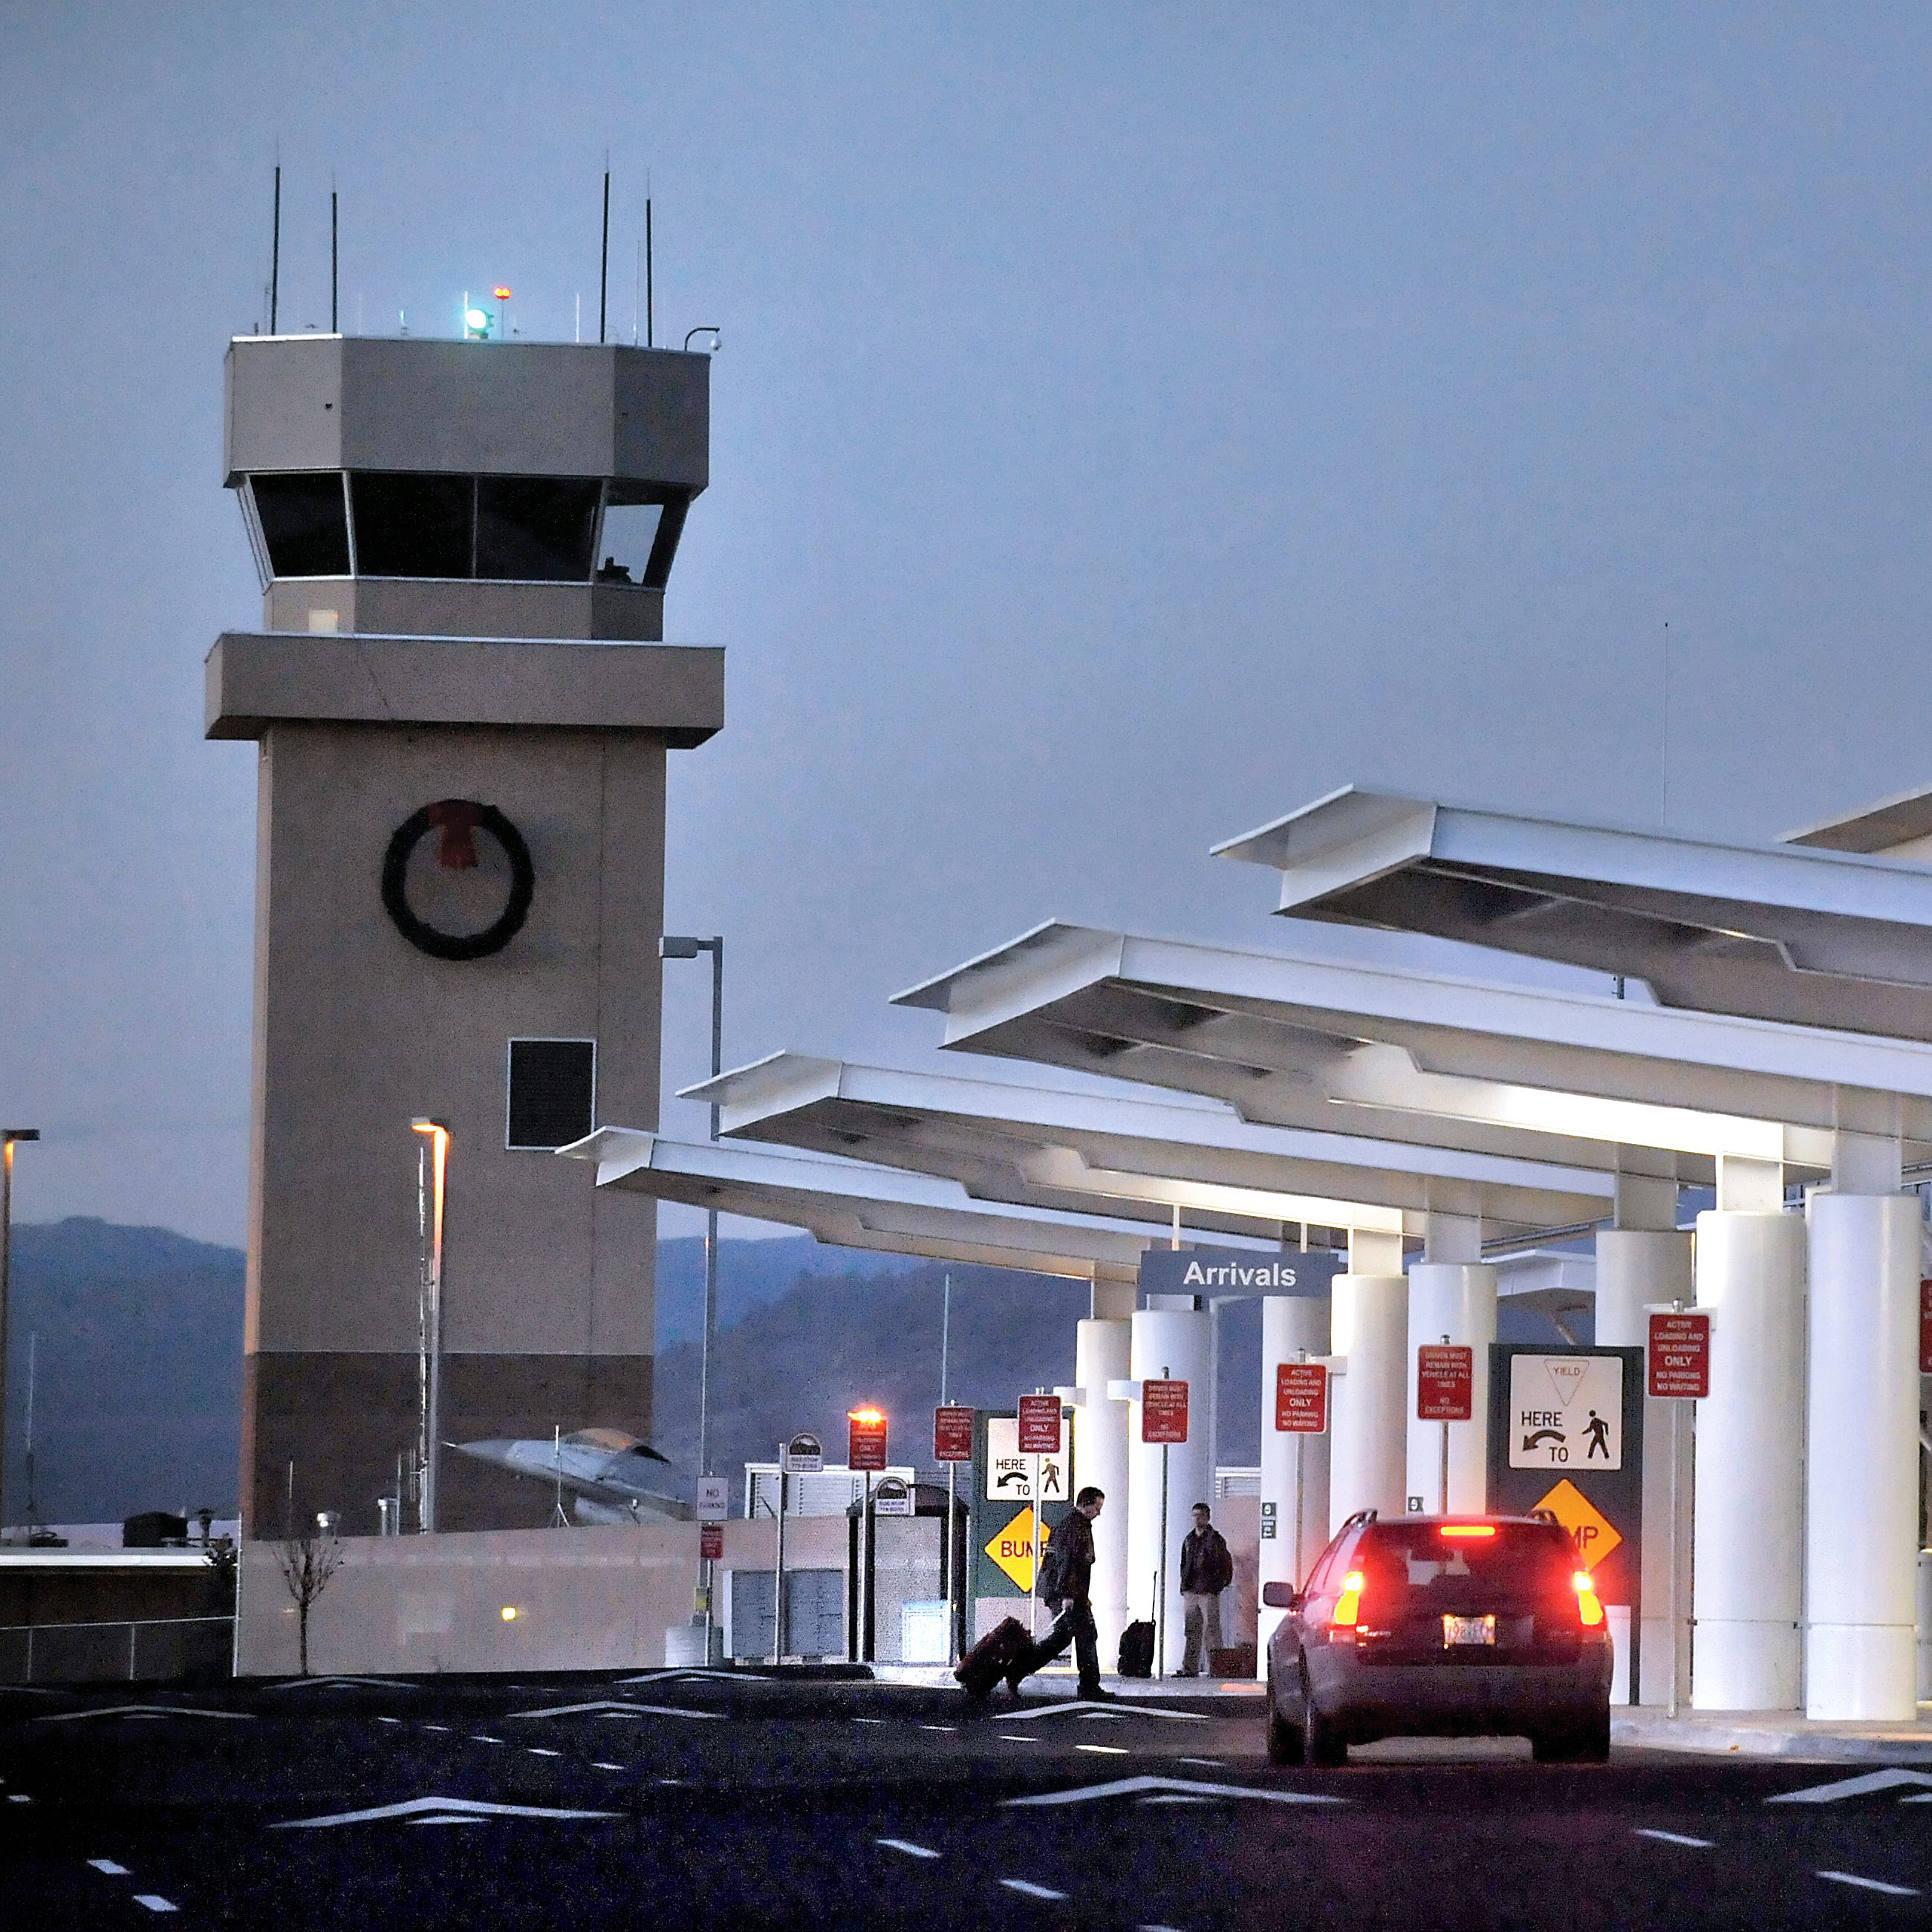 In this Dec. 15, 2011 file photo, the Medford airport tower and terminal are shown.